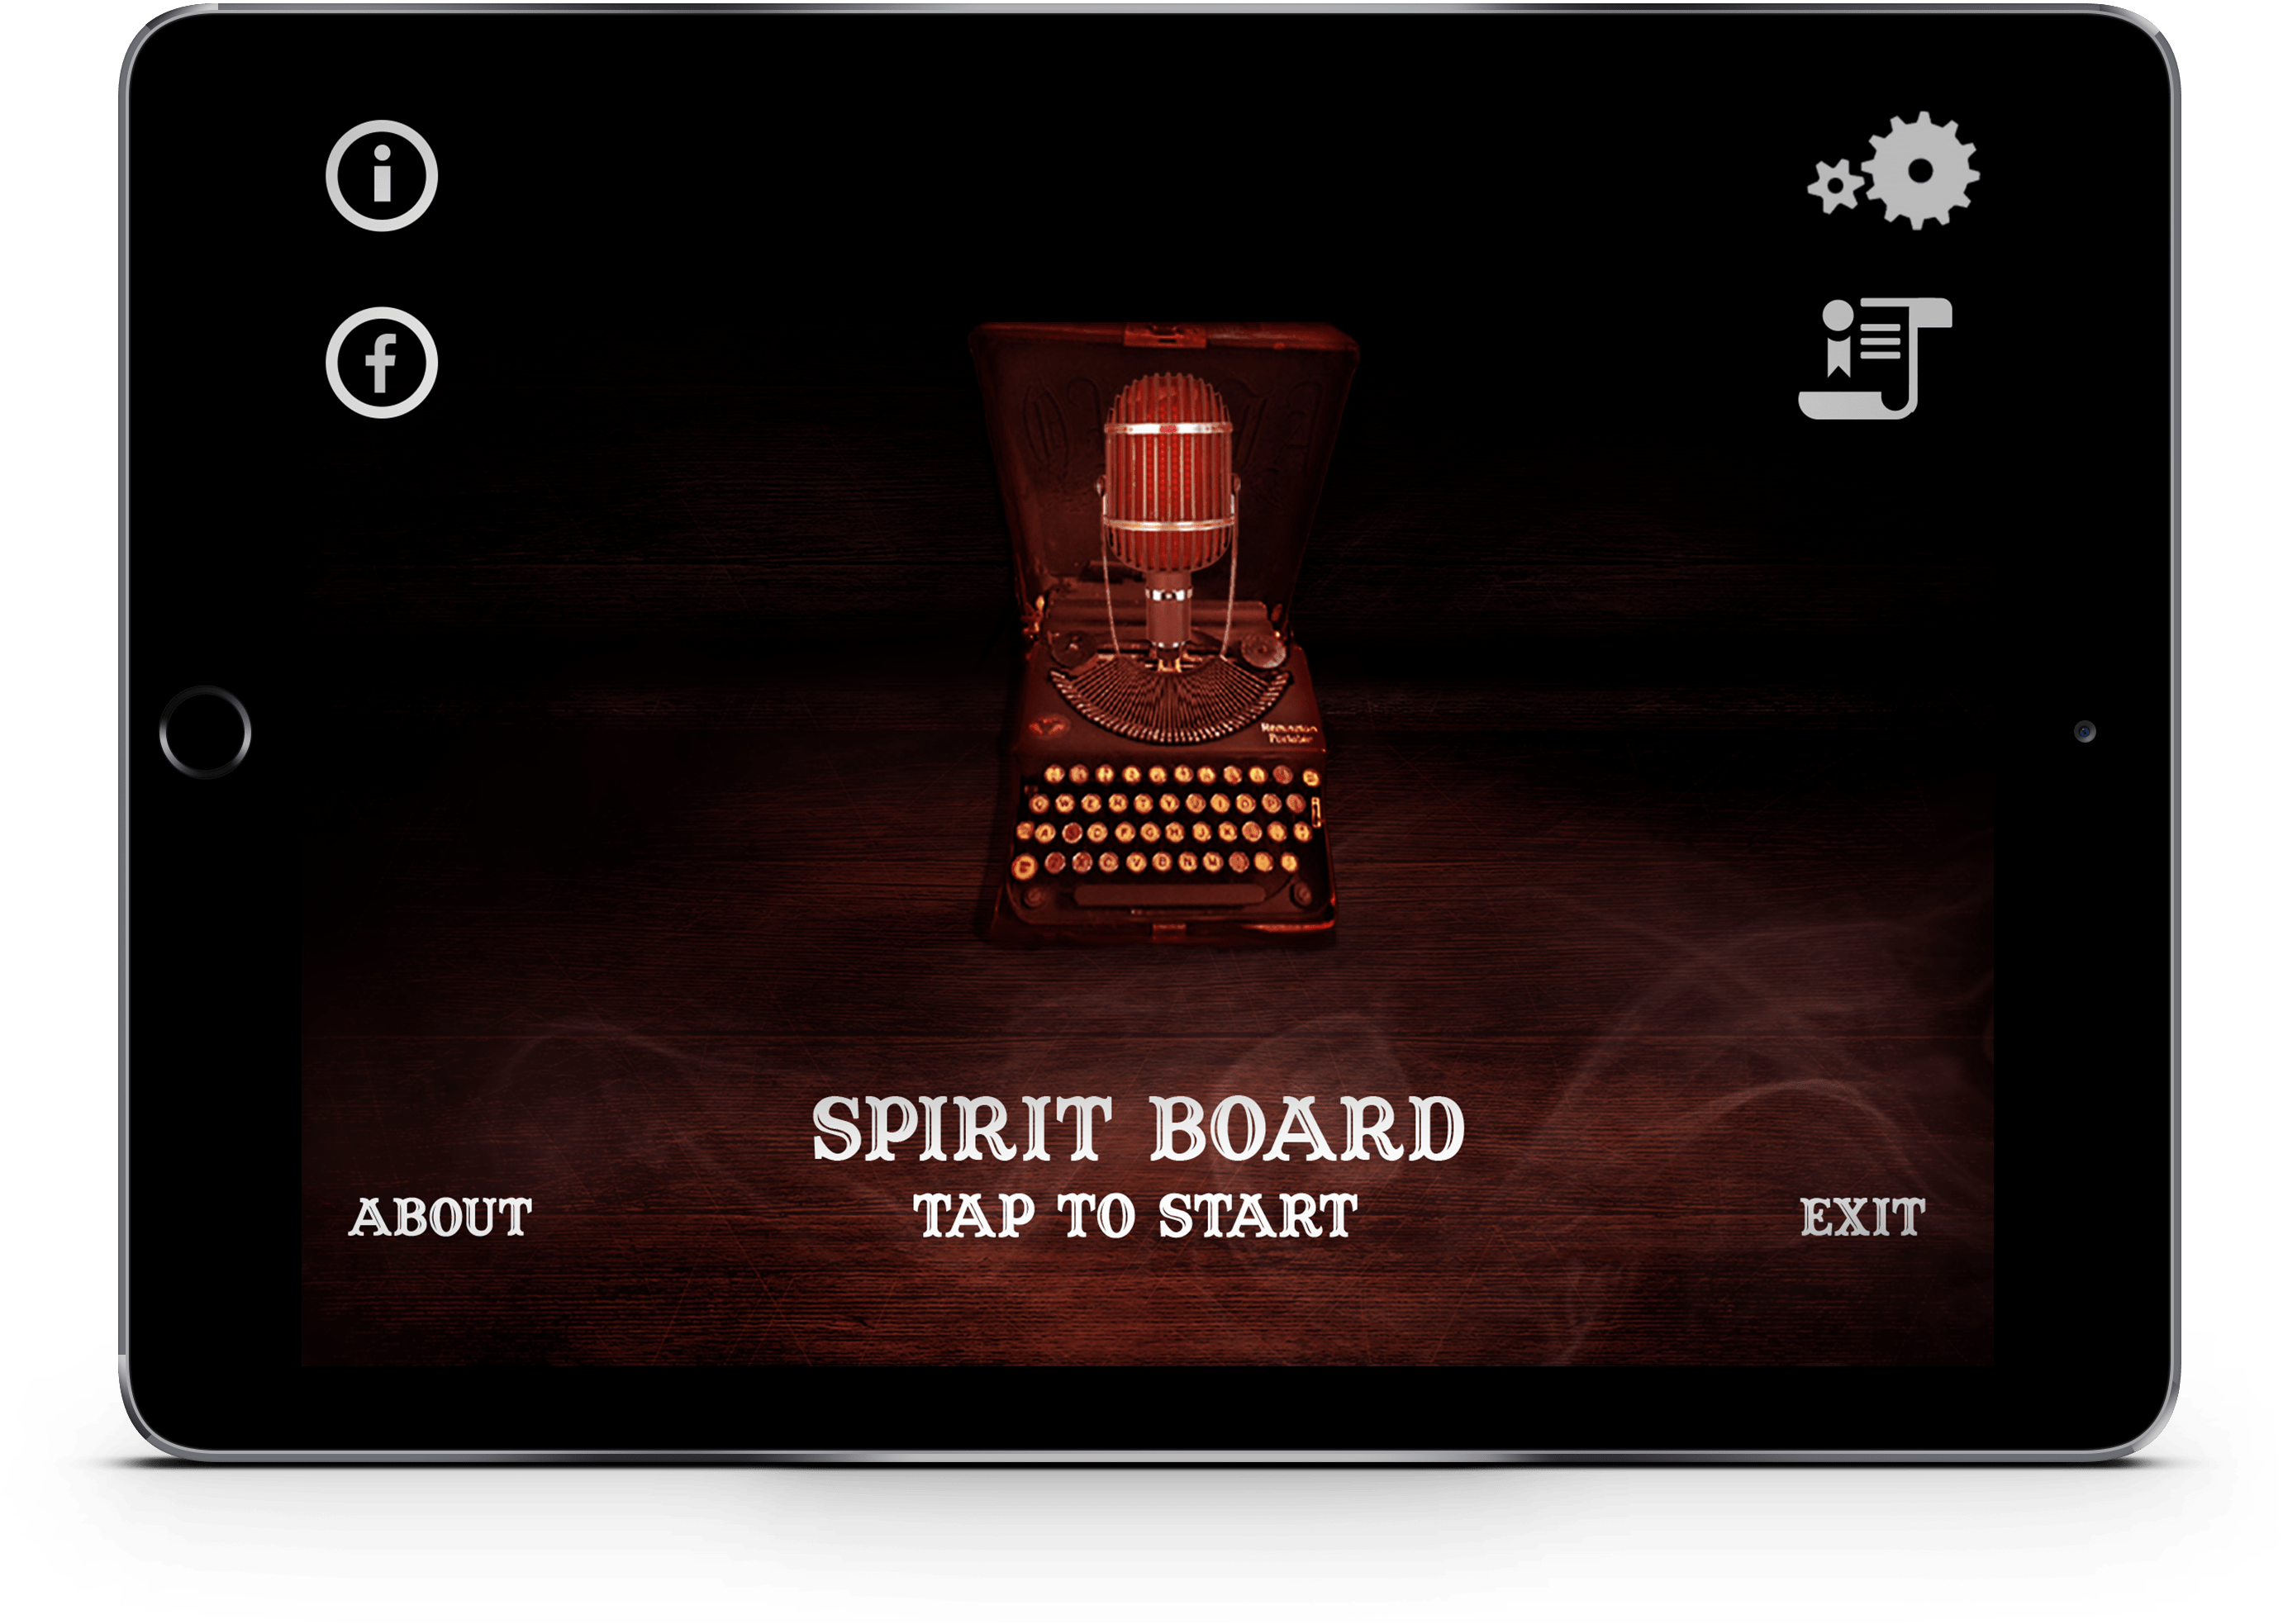 Spirit board app / Software development company Redwerk